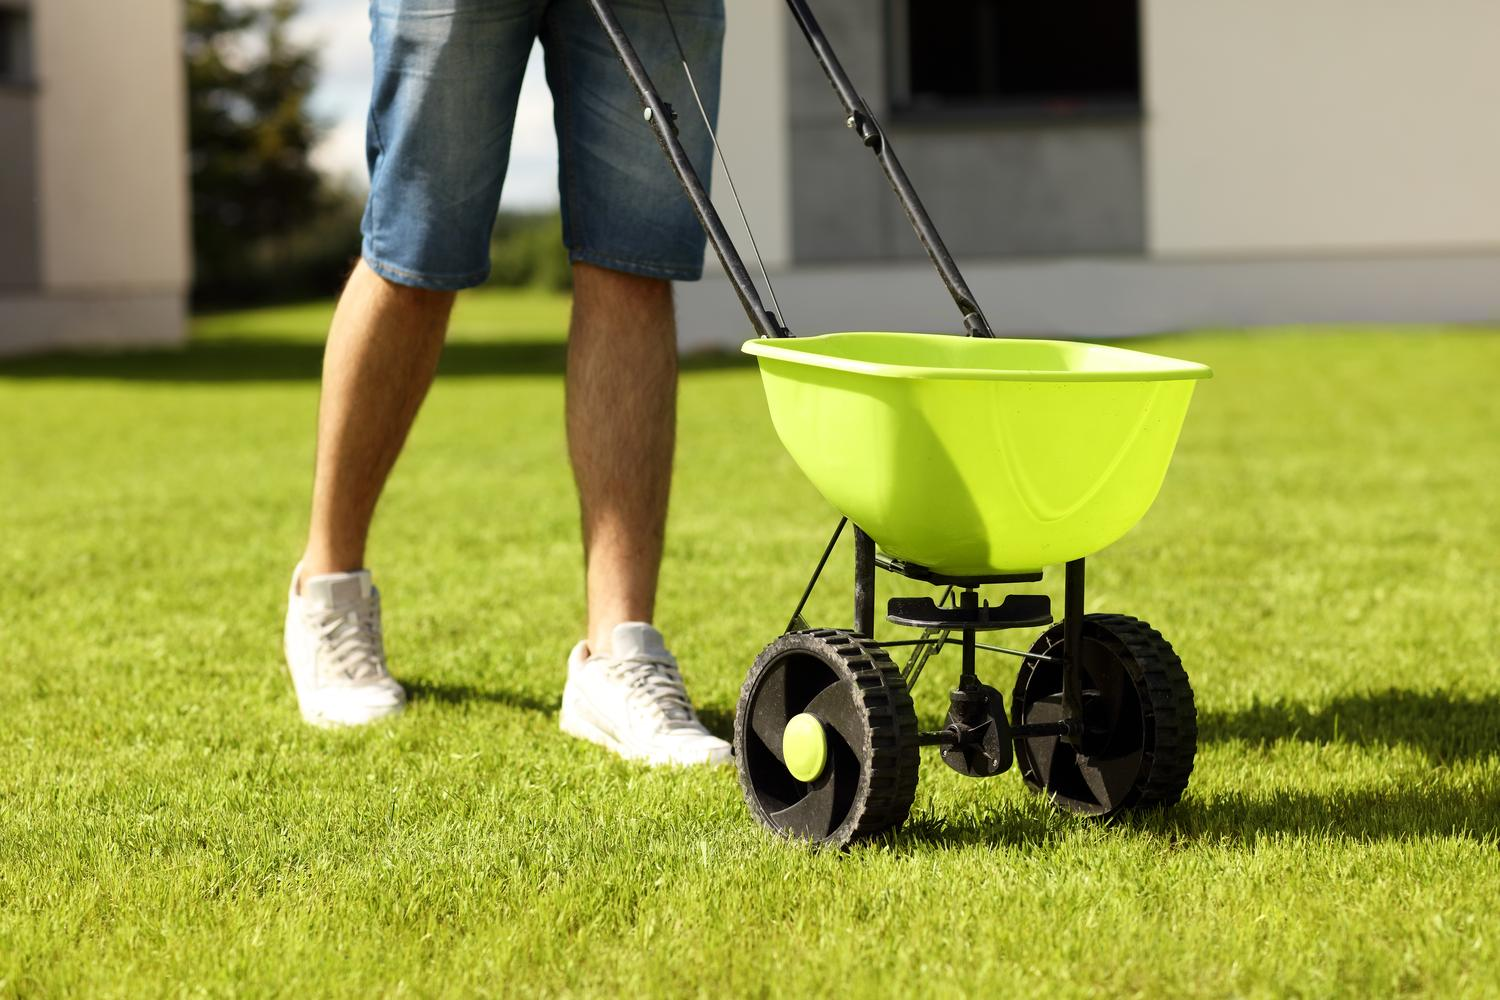 FERTILIZER SPREADER FOR YOUR LAWN